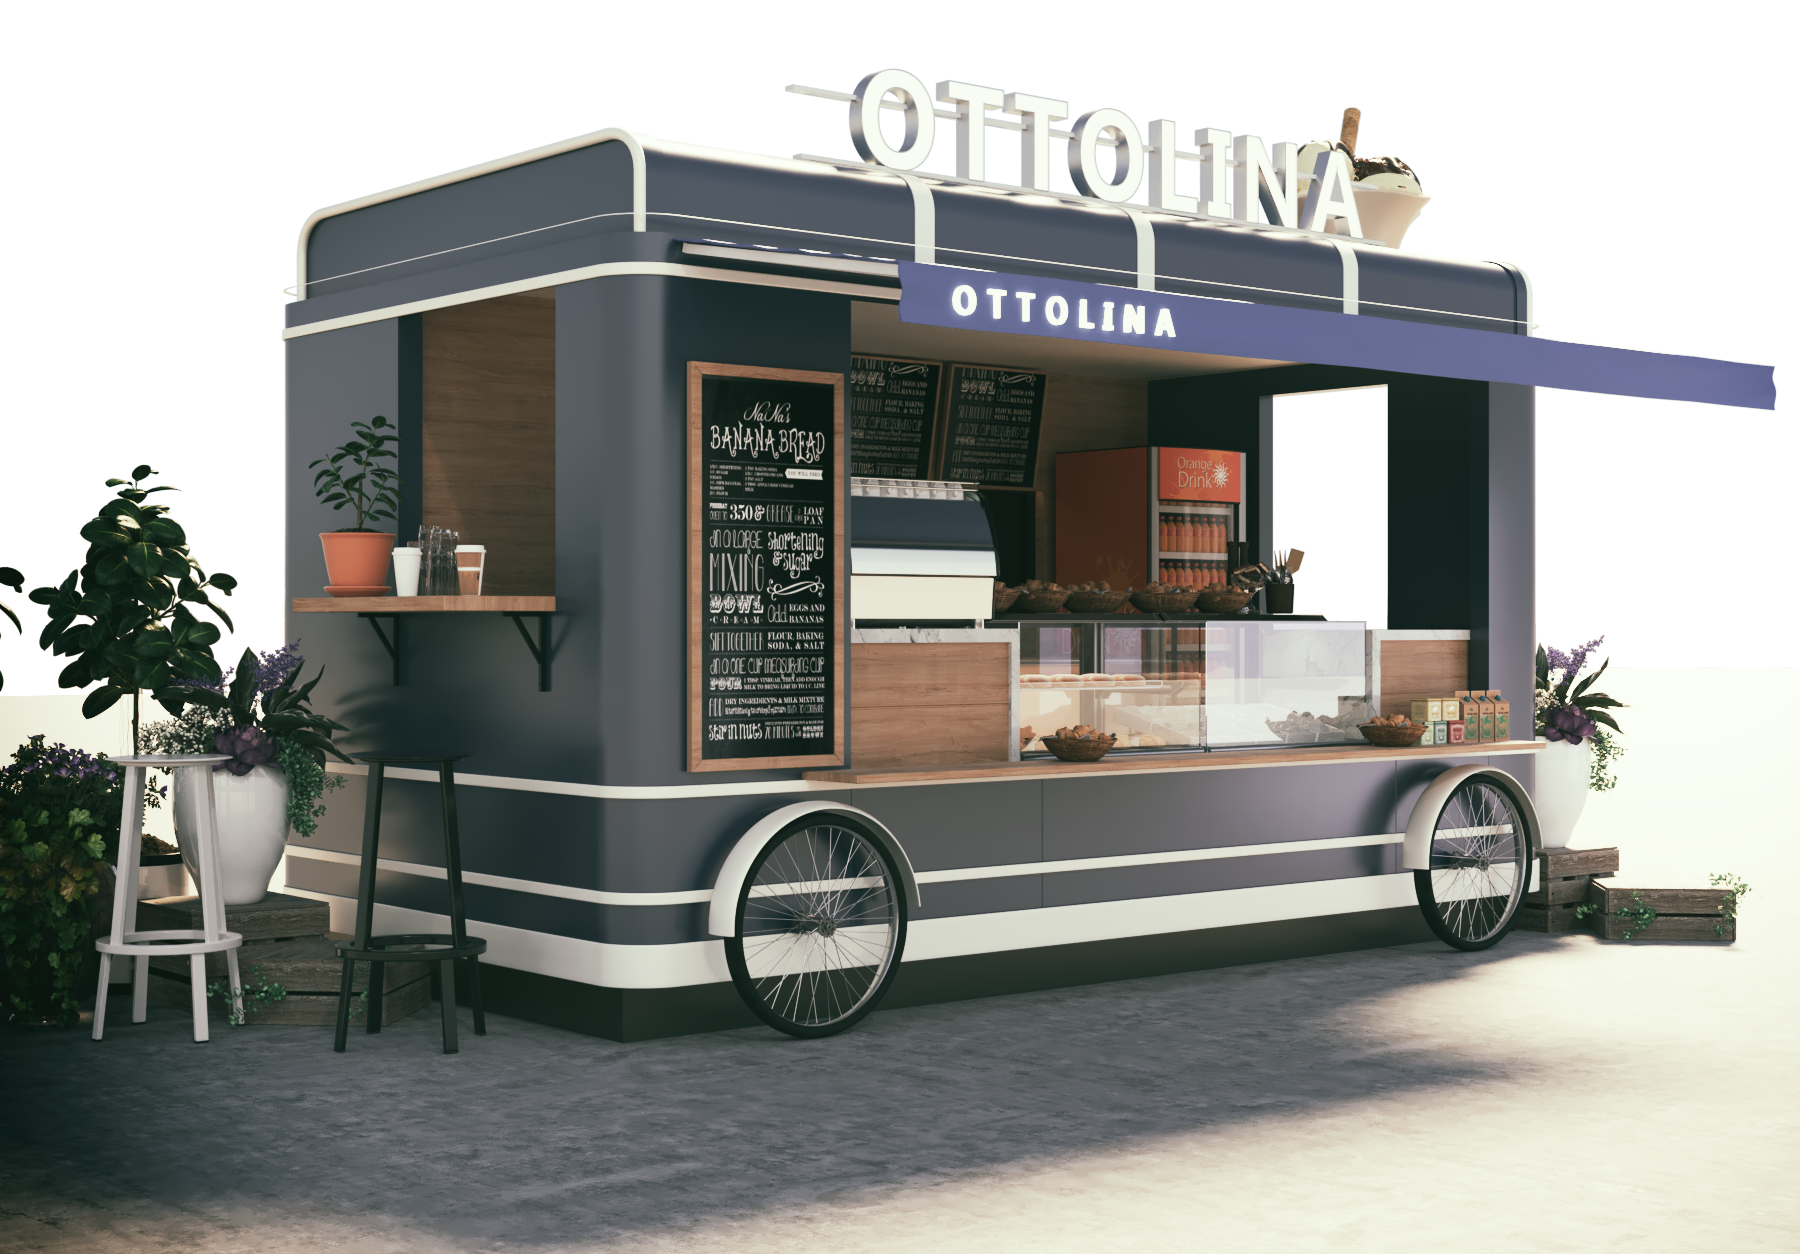 Food truck design for ottolina cafe shop it looks yami for Food truck blueprint